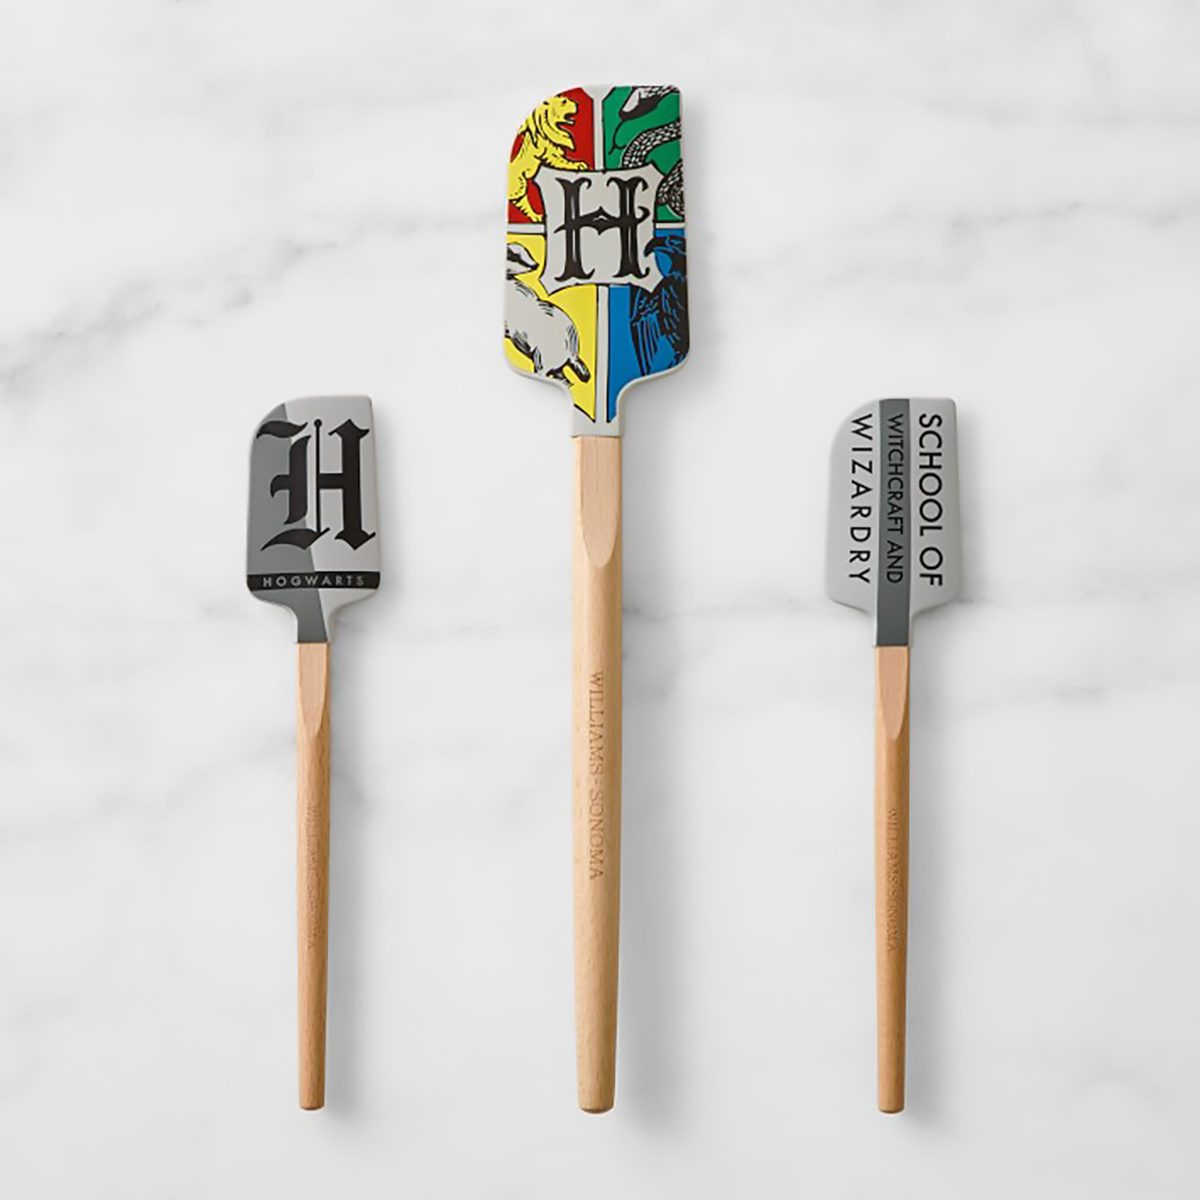 HARRY POTTER™ HOGWARTS™ Silicone Spatulas, Set of 3